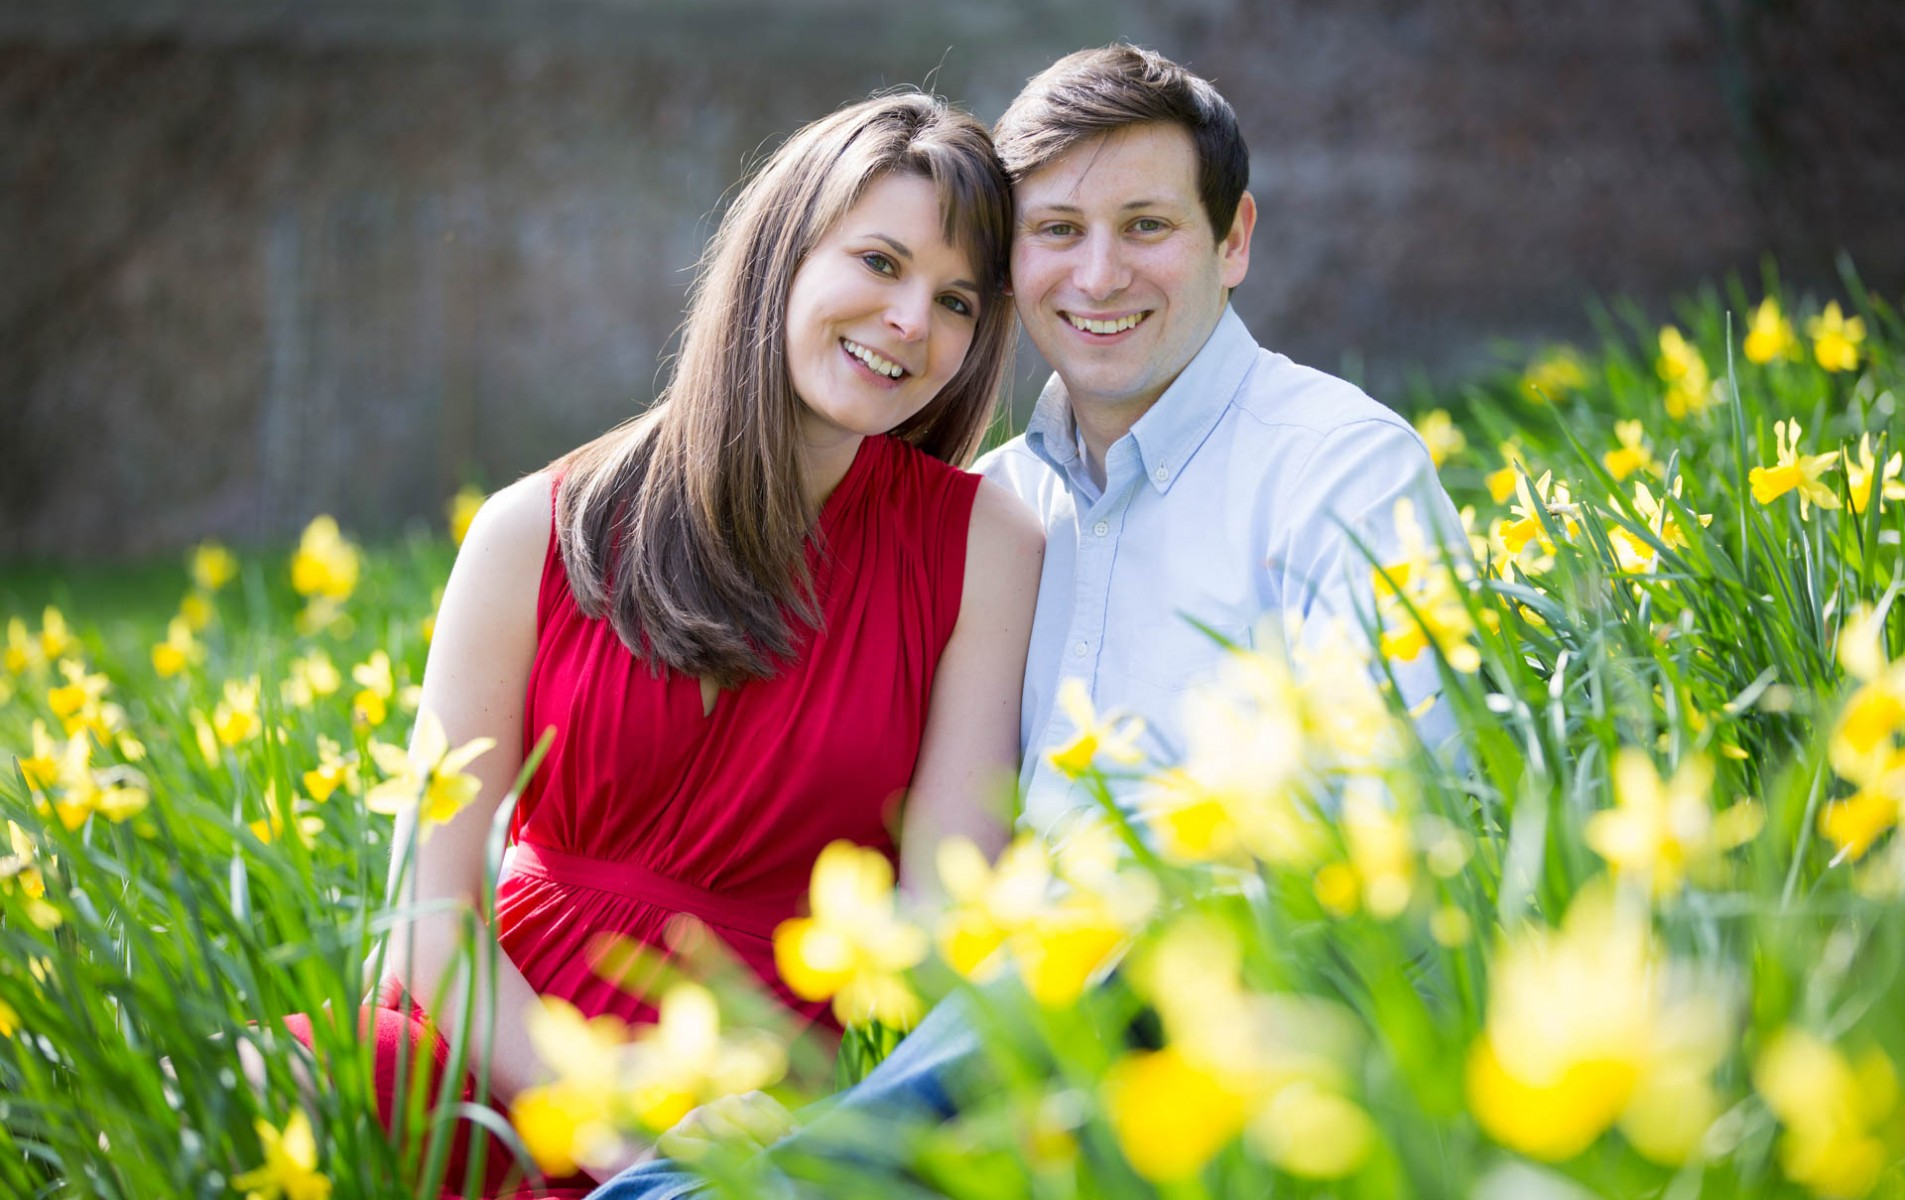 Malvern Hills Engagement Shoot with Donna and Mathew